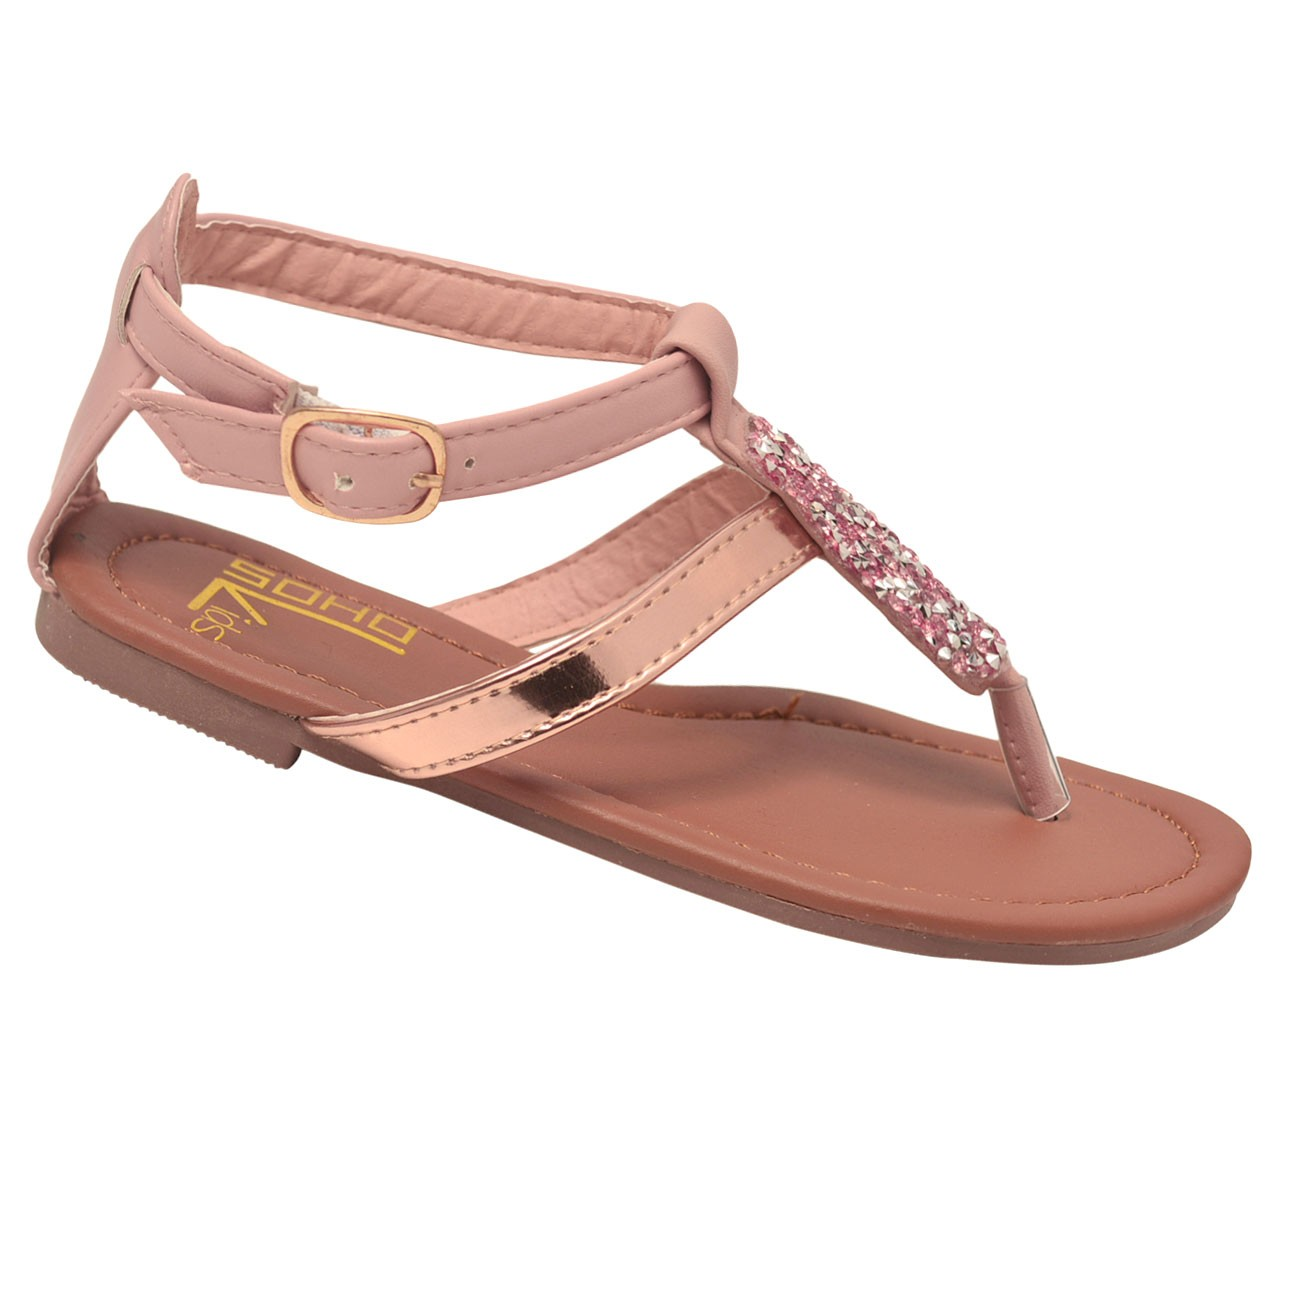 Soho Kids Girls Rose Gold Multi Glitter Thong Flip-Flop Sandals